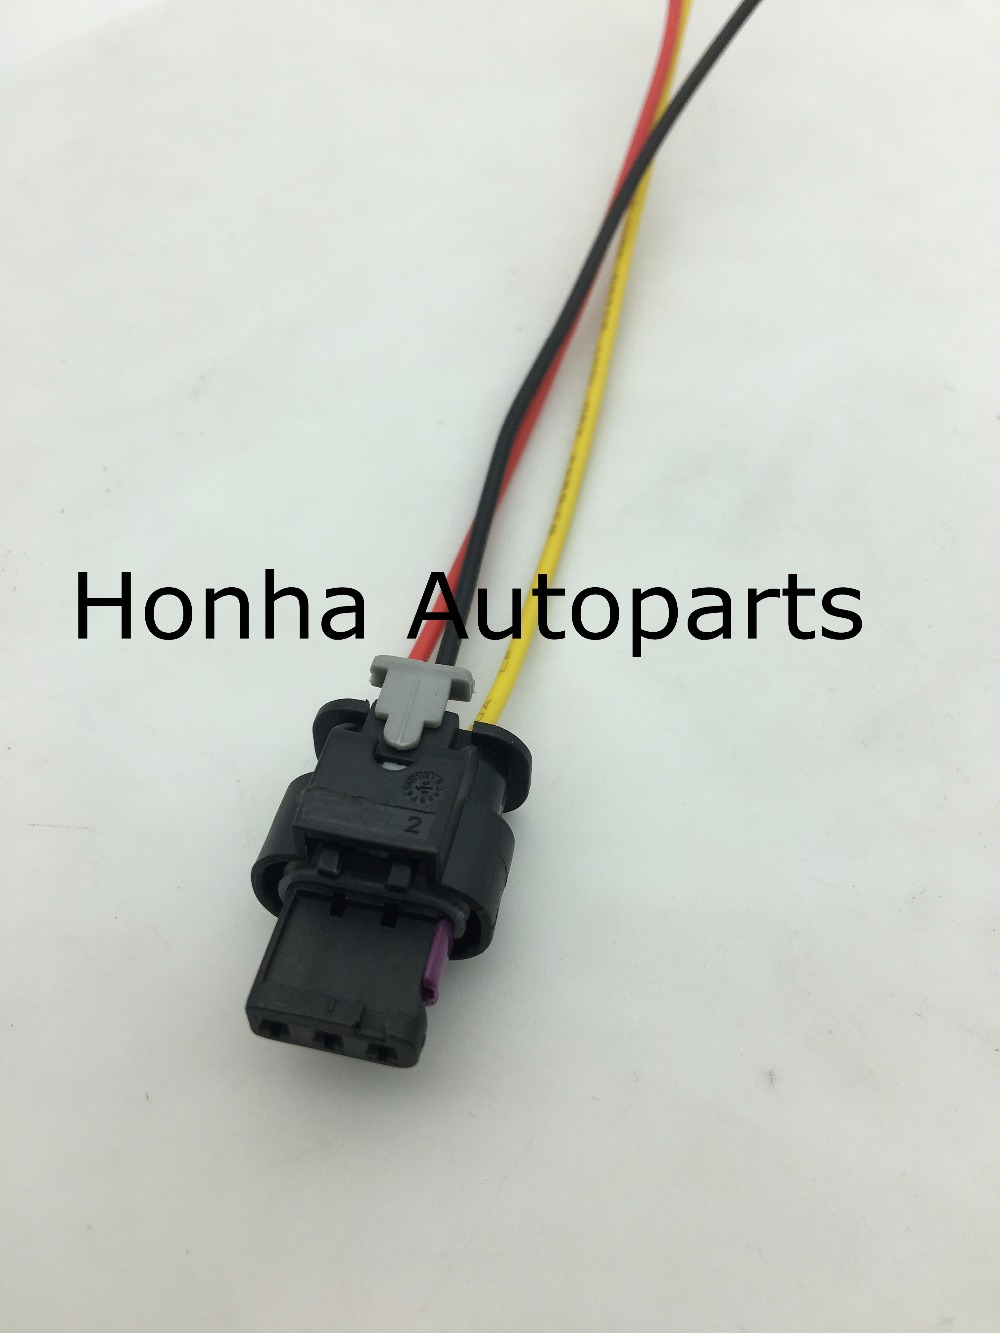 Audi Wiring Harness Connectors Library Vw Jetta Flat Housing Connector Plug 3 Pin For Touareg 2007 2012